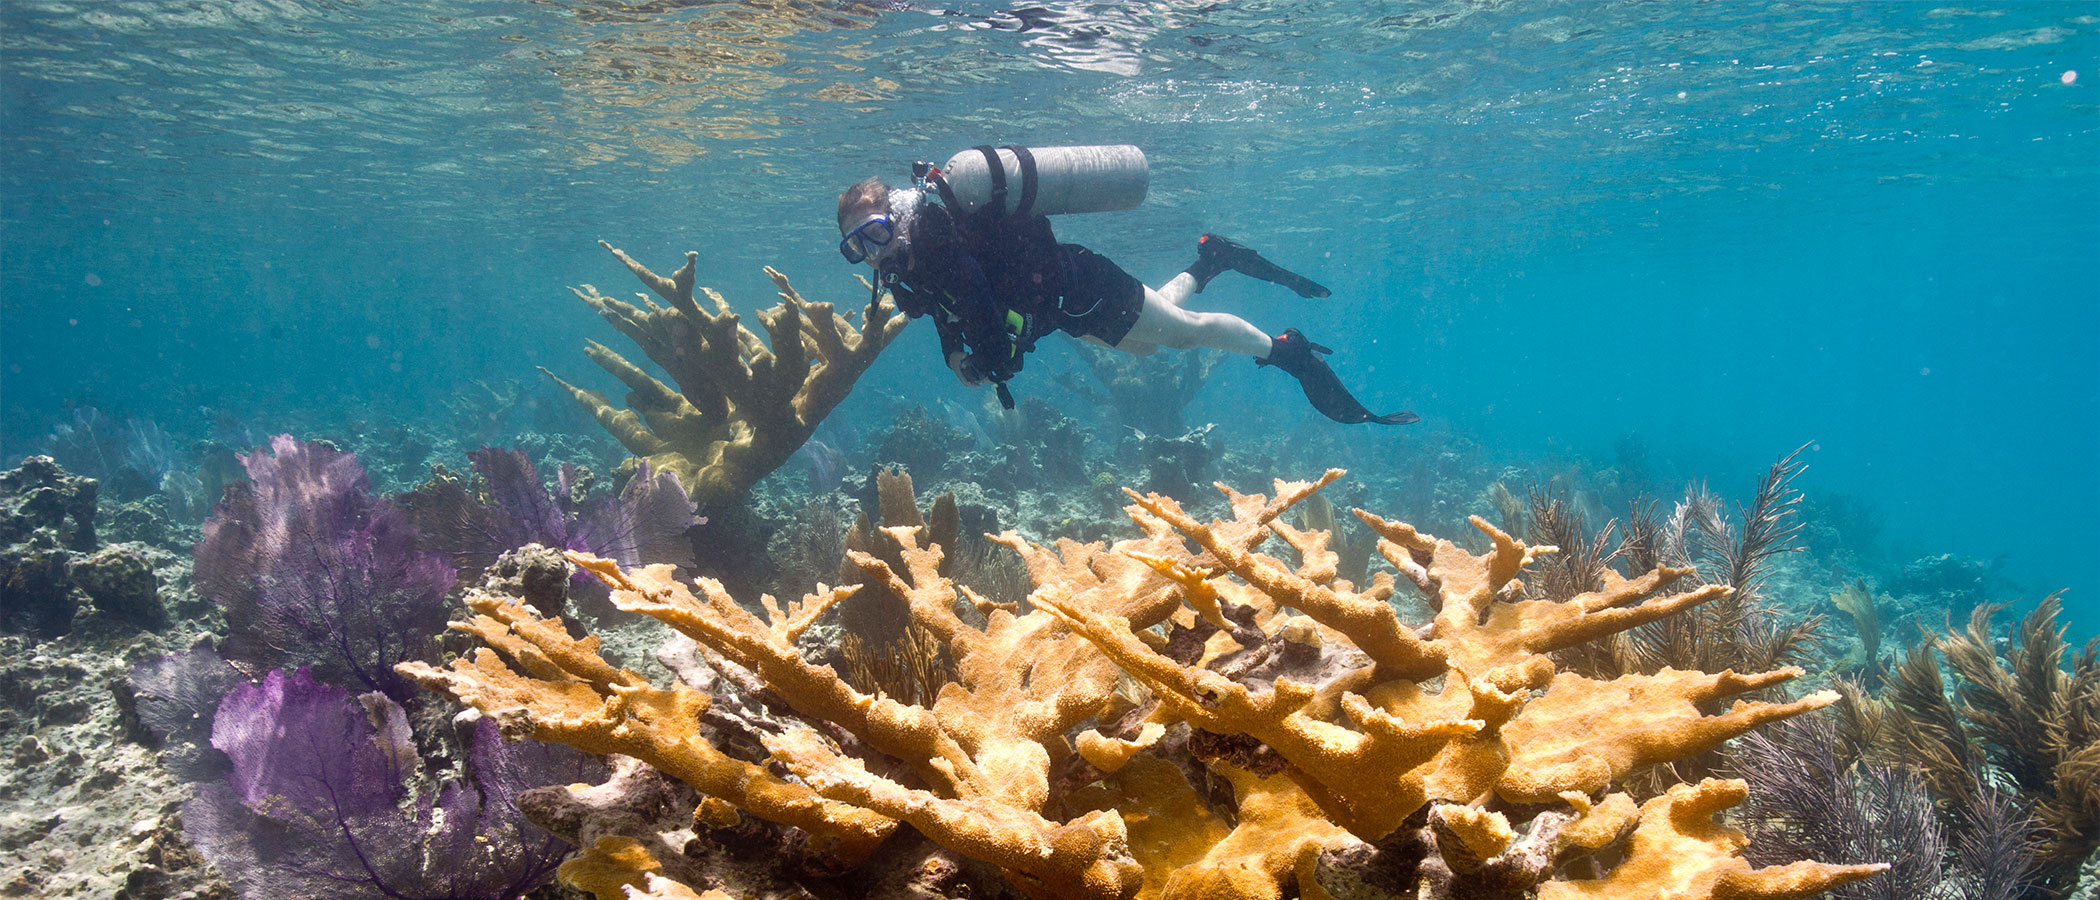 A diver examining coral under water